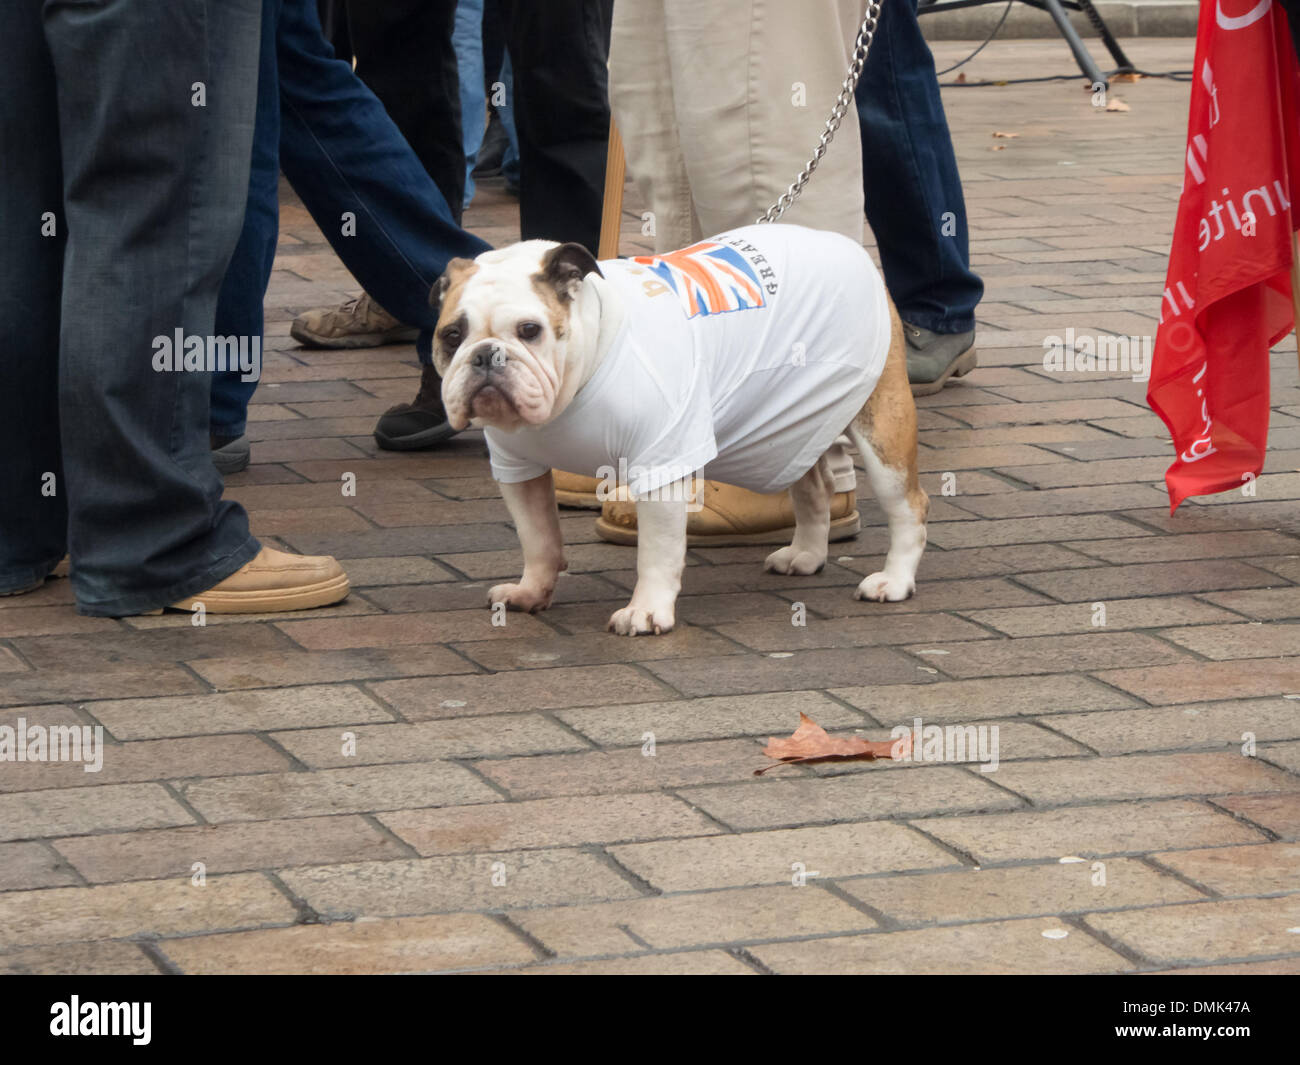 Portsmouth, UK. 14th December 2013. A bulldog wears a T-shirt during a protest against the possible closure of BAE shipbuilding facilities within the Dockyard  Credit:  simon evans/Alamy Live News - Stock Image